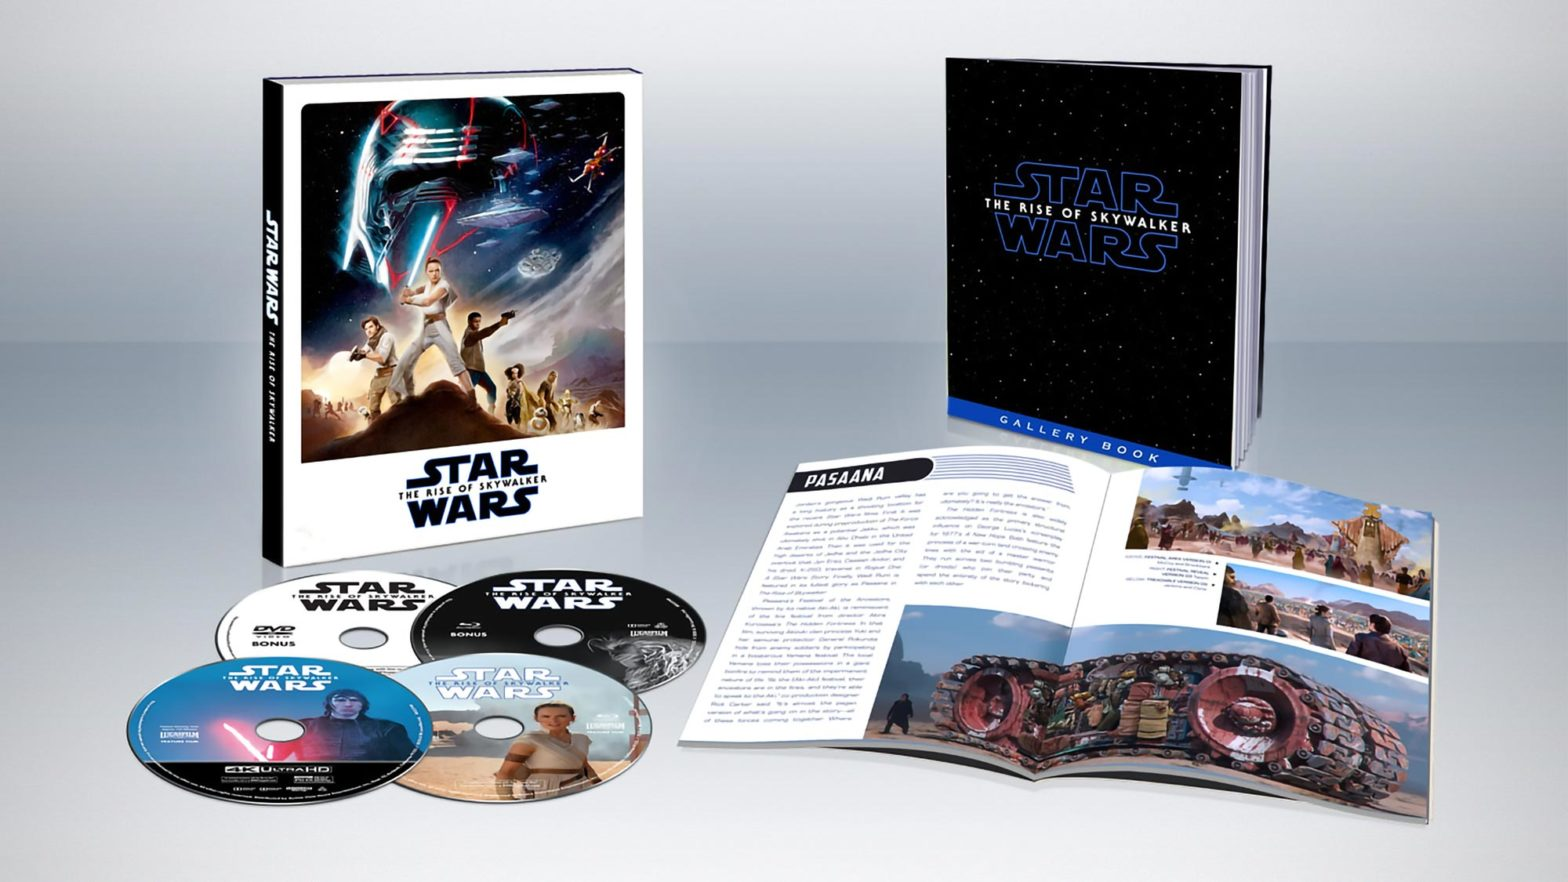 Star Wars The Rise of Skywalker Blu-ray and DVD